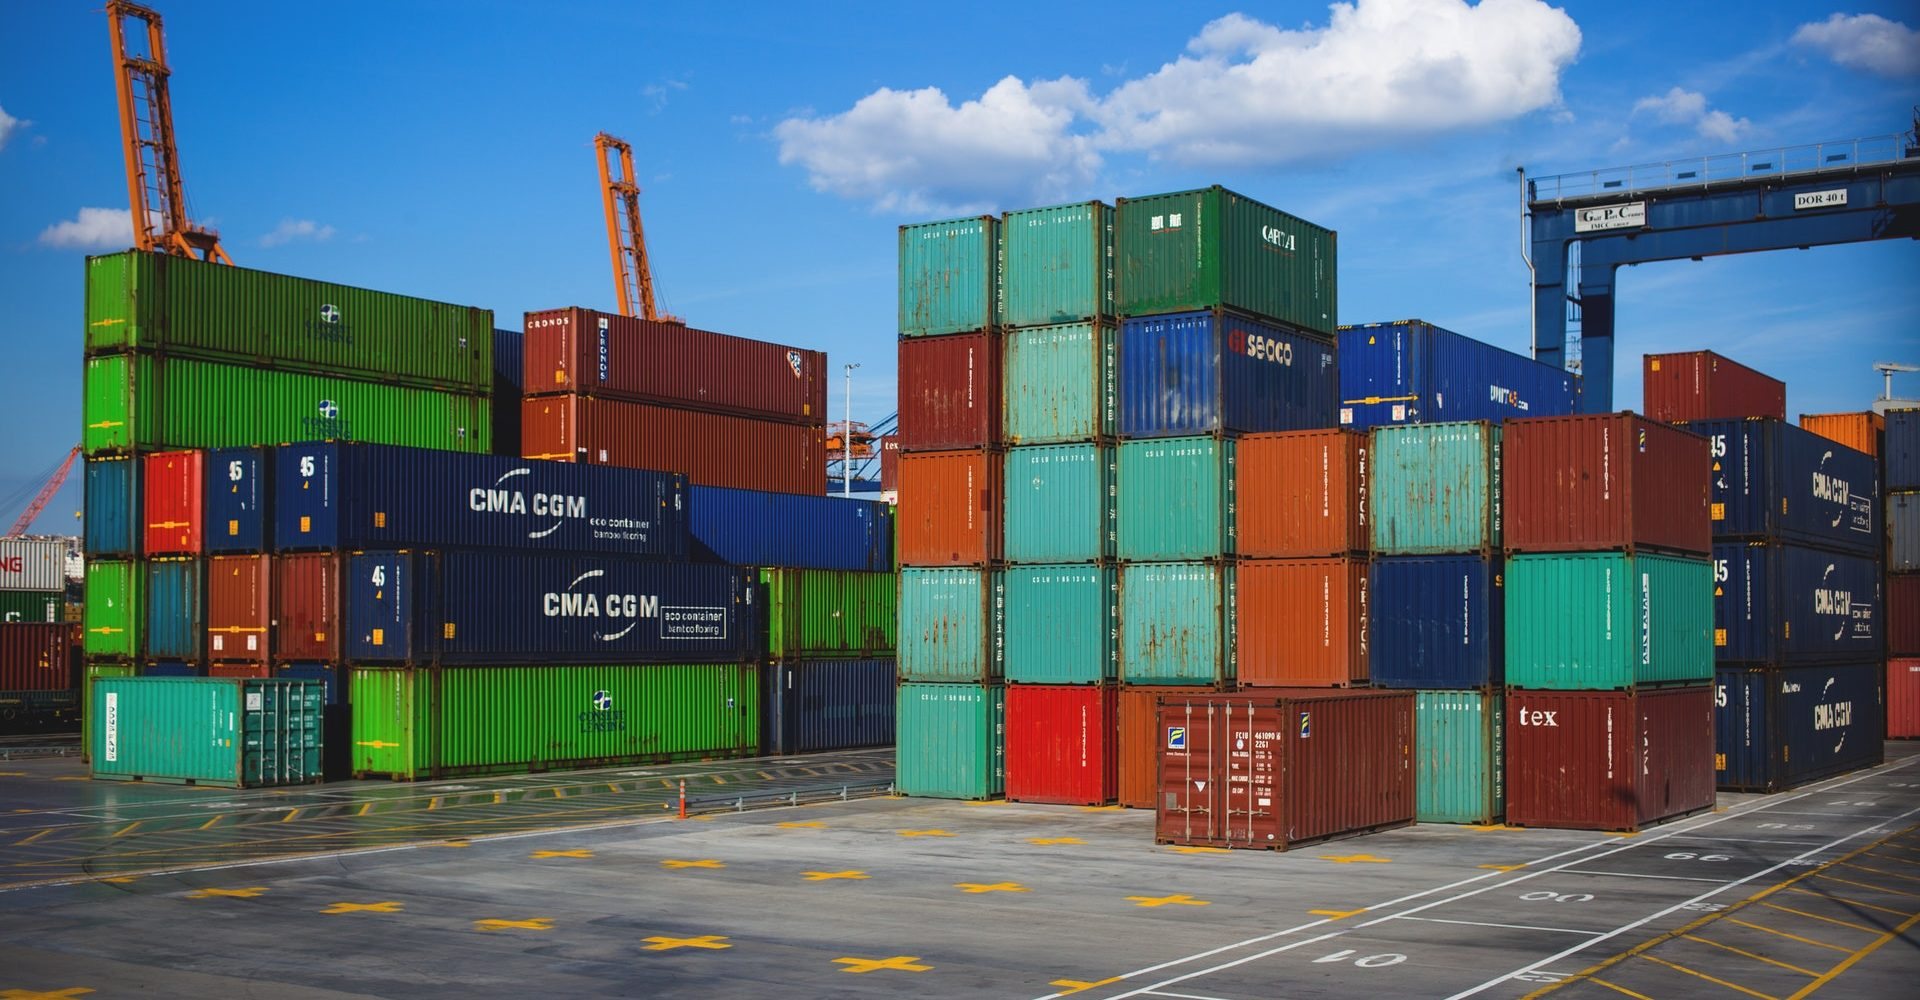 steel-container-on-container-dock-122164